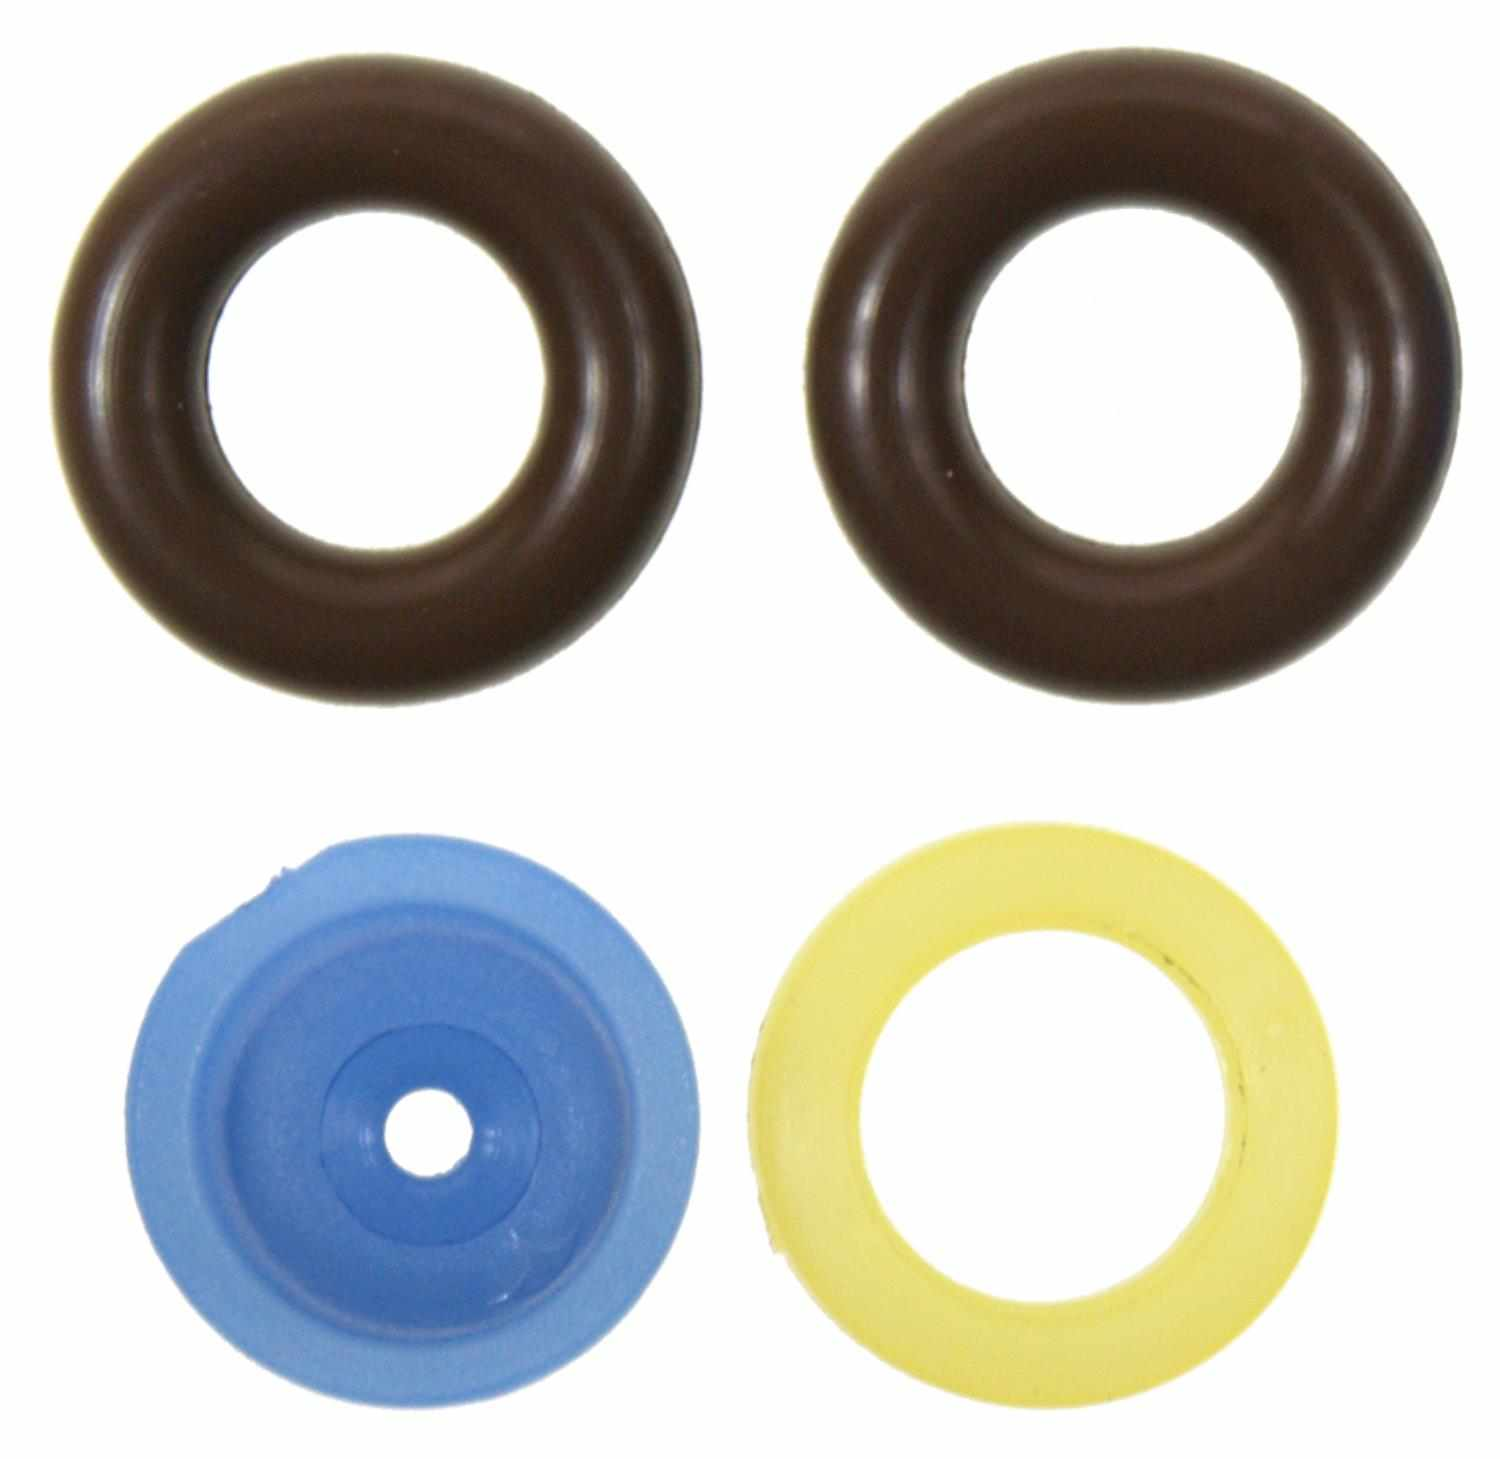 ACDELCO GOLD/PROFESSIONAL - Fuel Injector Seal Kit - DCC 217-3414